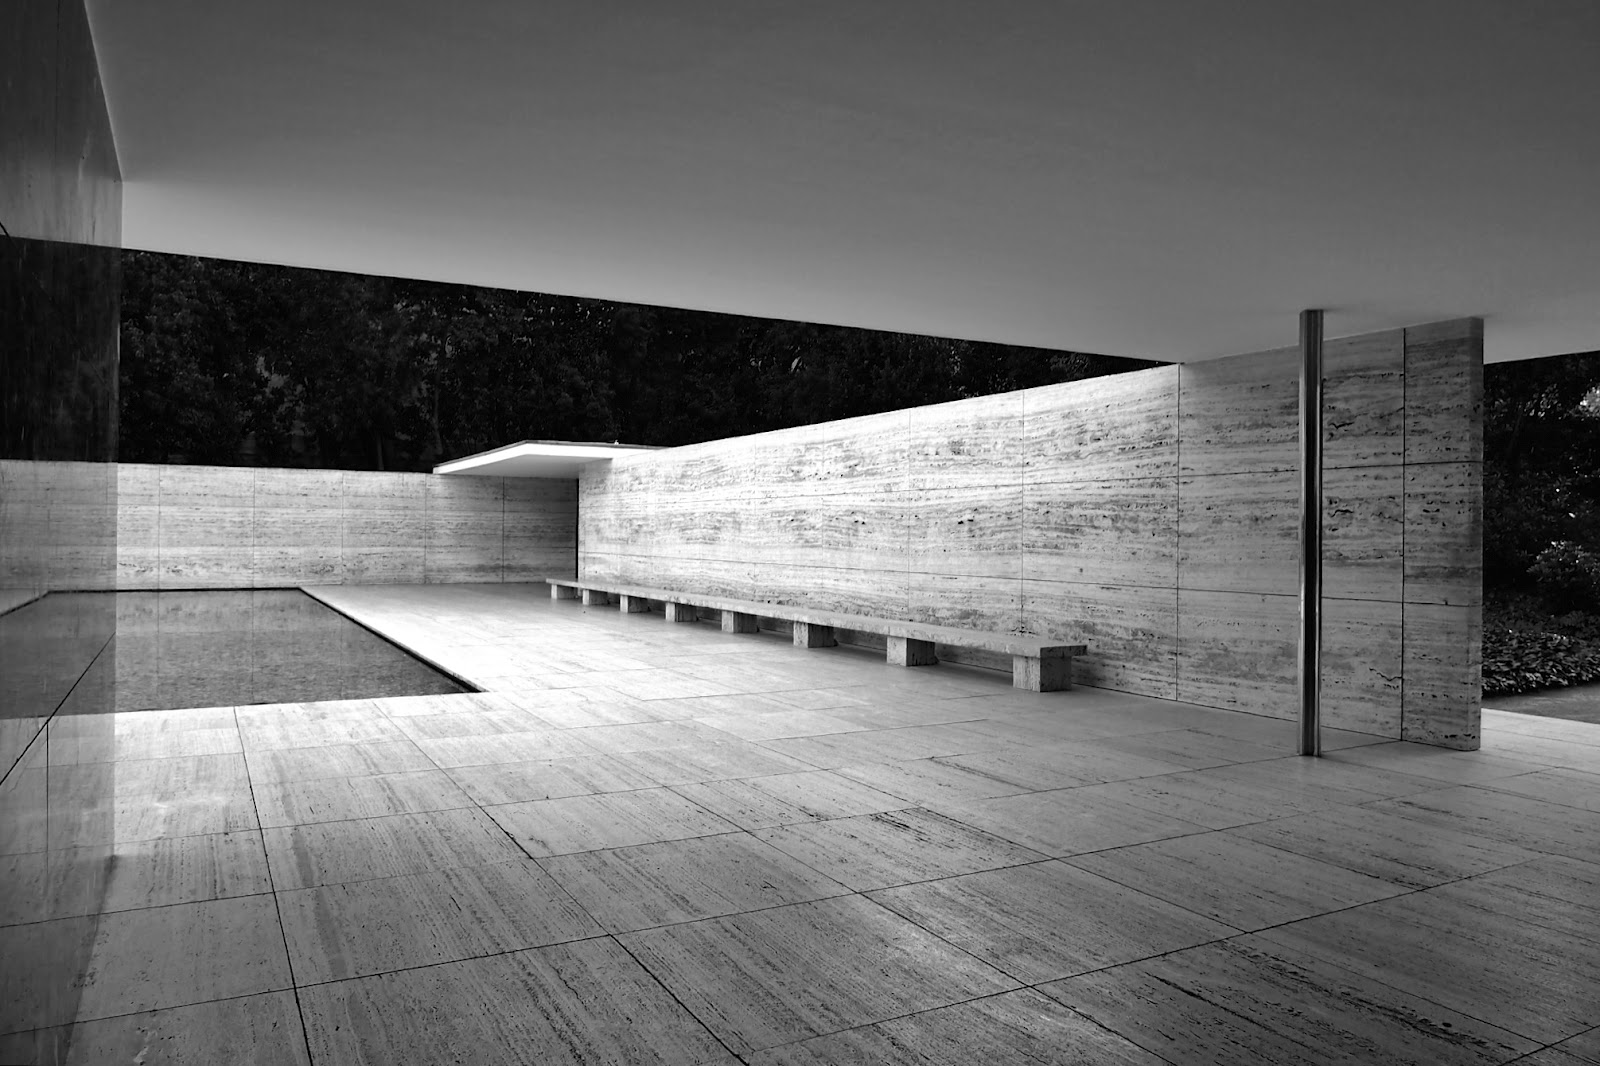 Ludwig Mies van der Rohe,  Barcelona Pavilion, Barcelona. The minimal interplay of columns, walls and roof planes create an almost delicate composition, each material thoughtfully considered. It feels like one part museum, one part ancient temple - a place of reflection and contemplation.